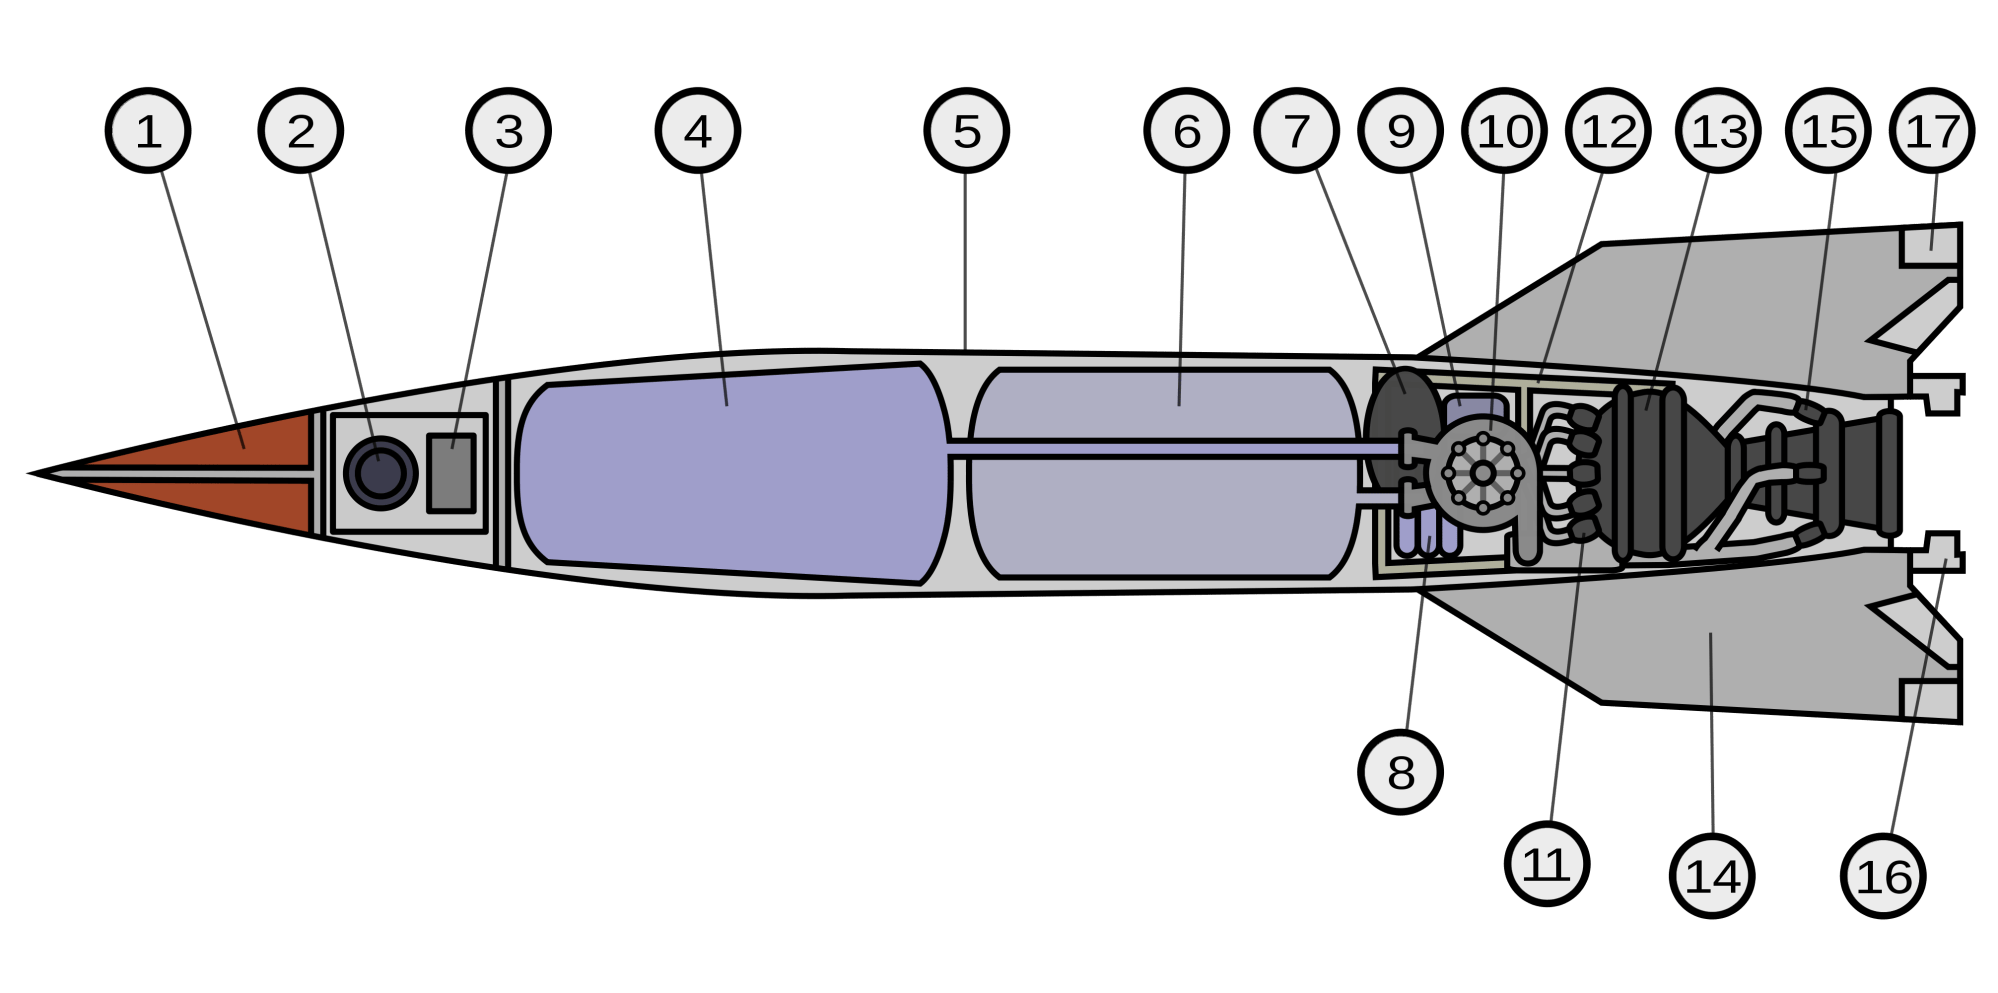 hight resolution of fichier diagram schematic of the v2 rocket numbered png